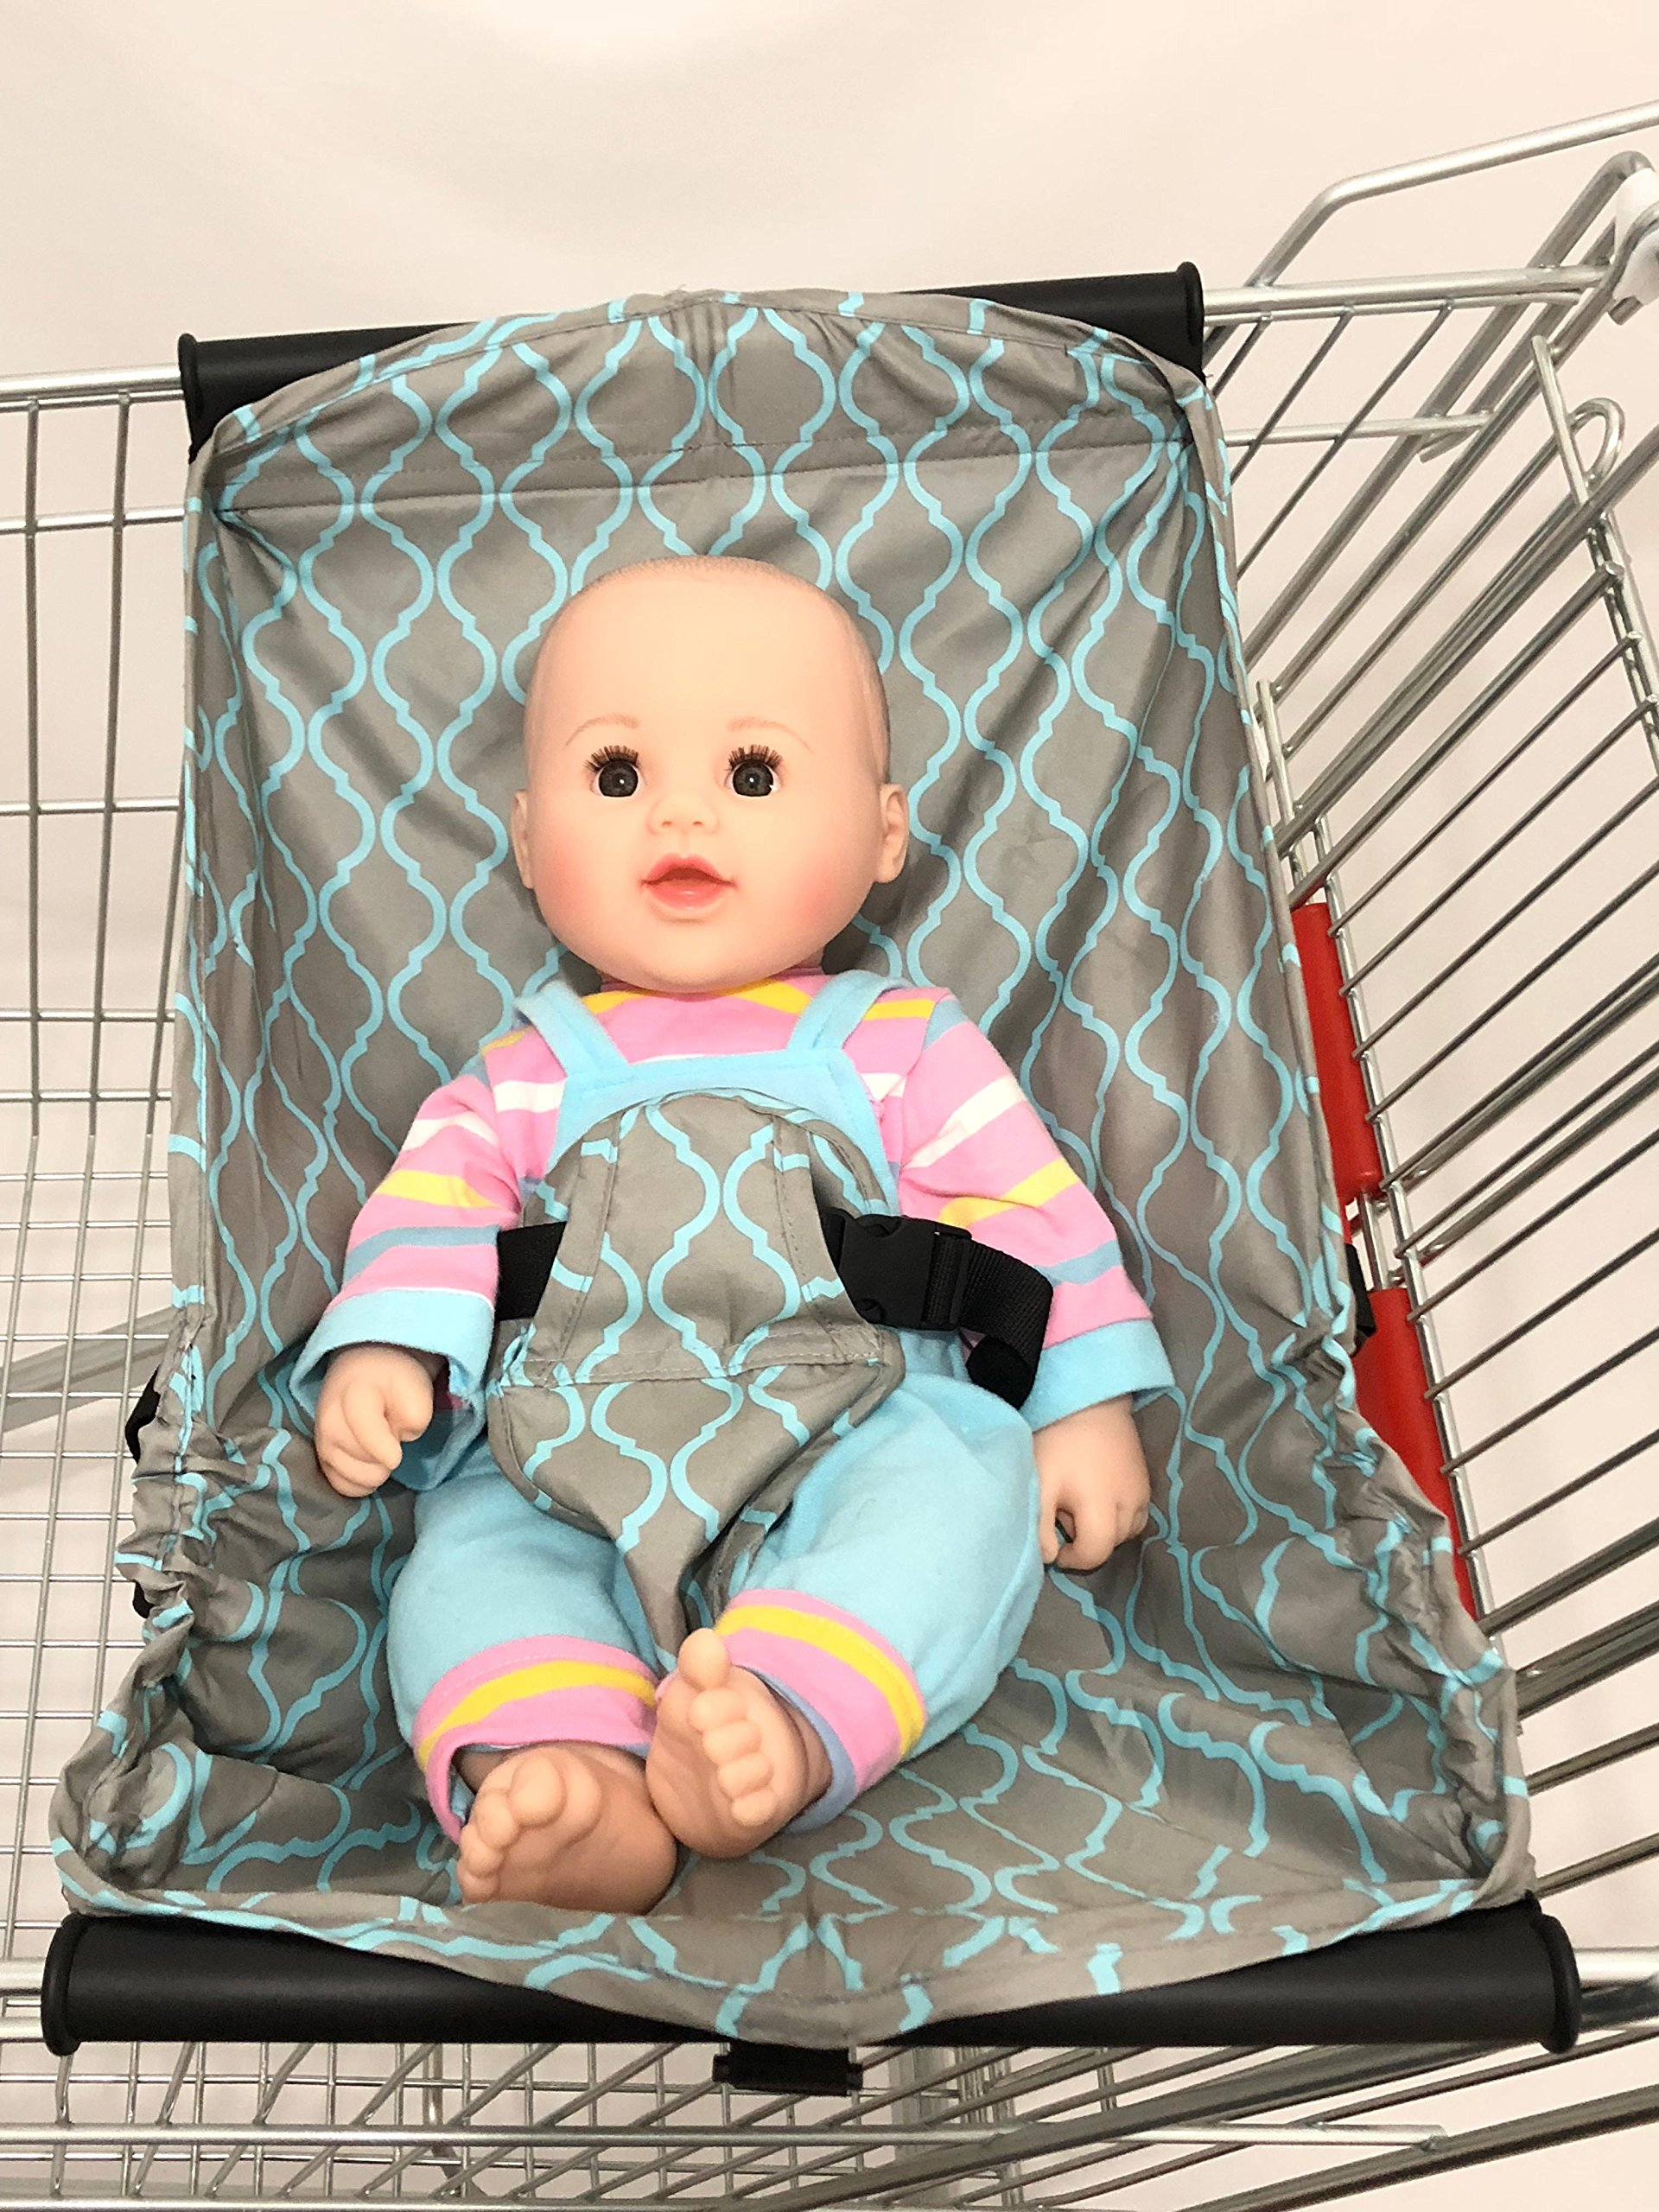 4 Hooks for Larger Load-Bearing Baby Shopping Cart Hammock/Shopping Cart Bed for Newborn (Grid)